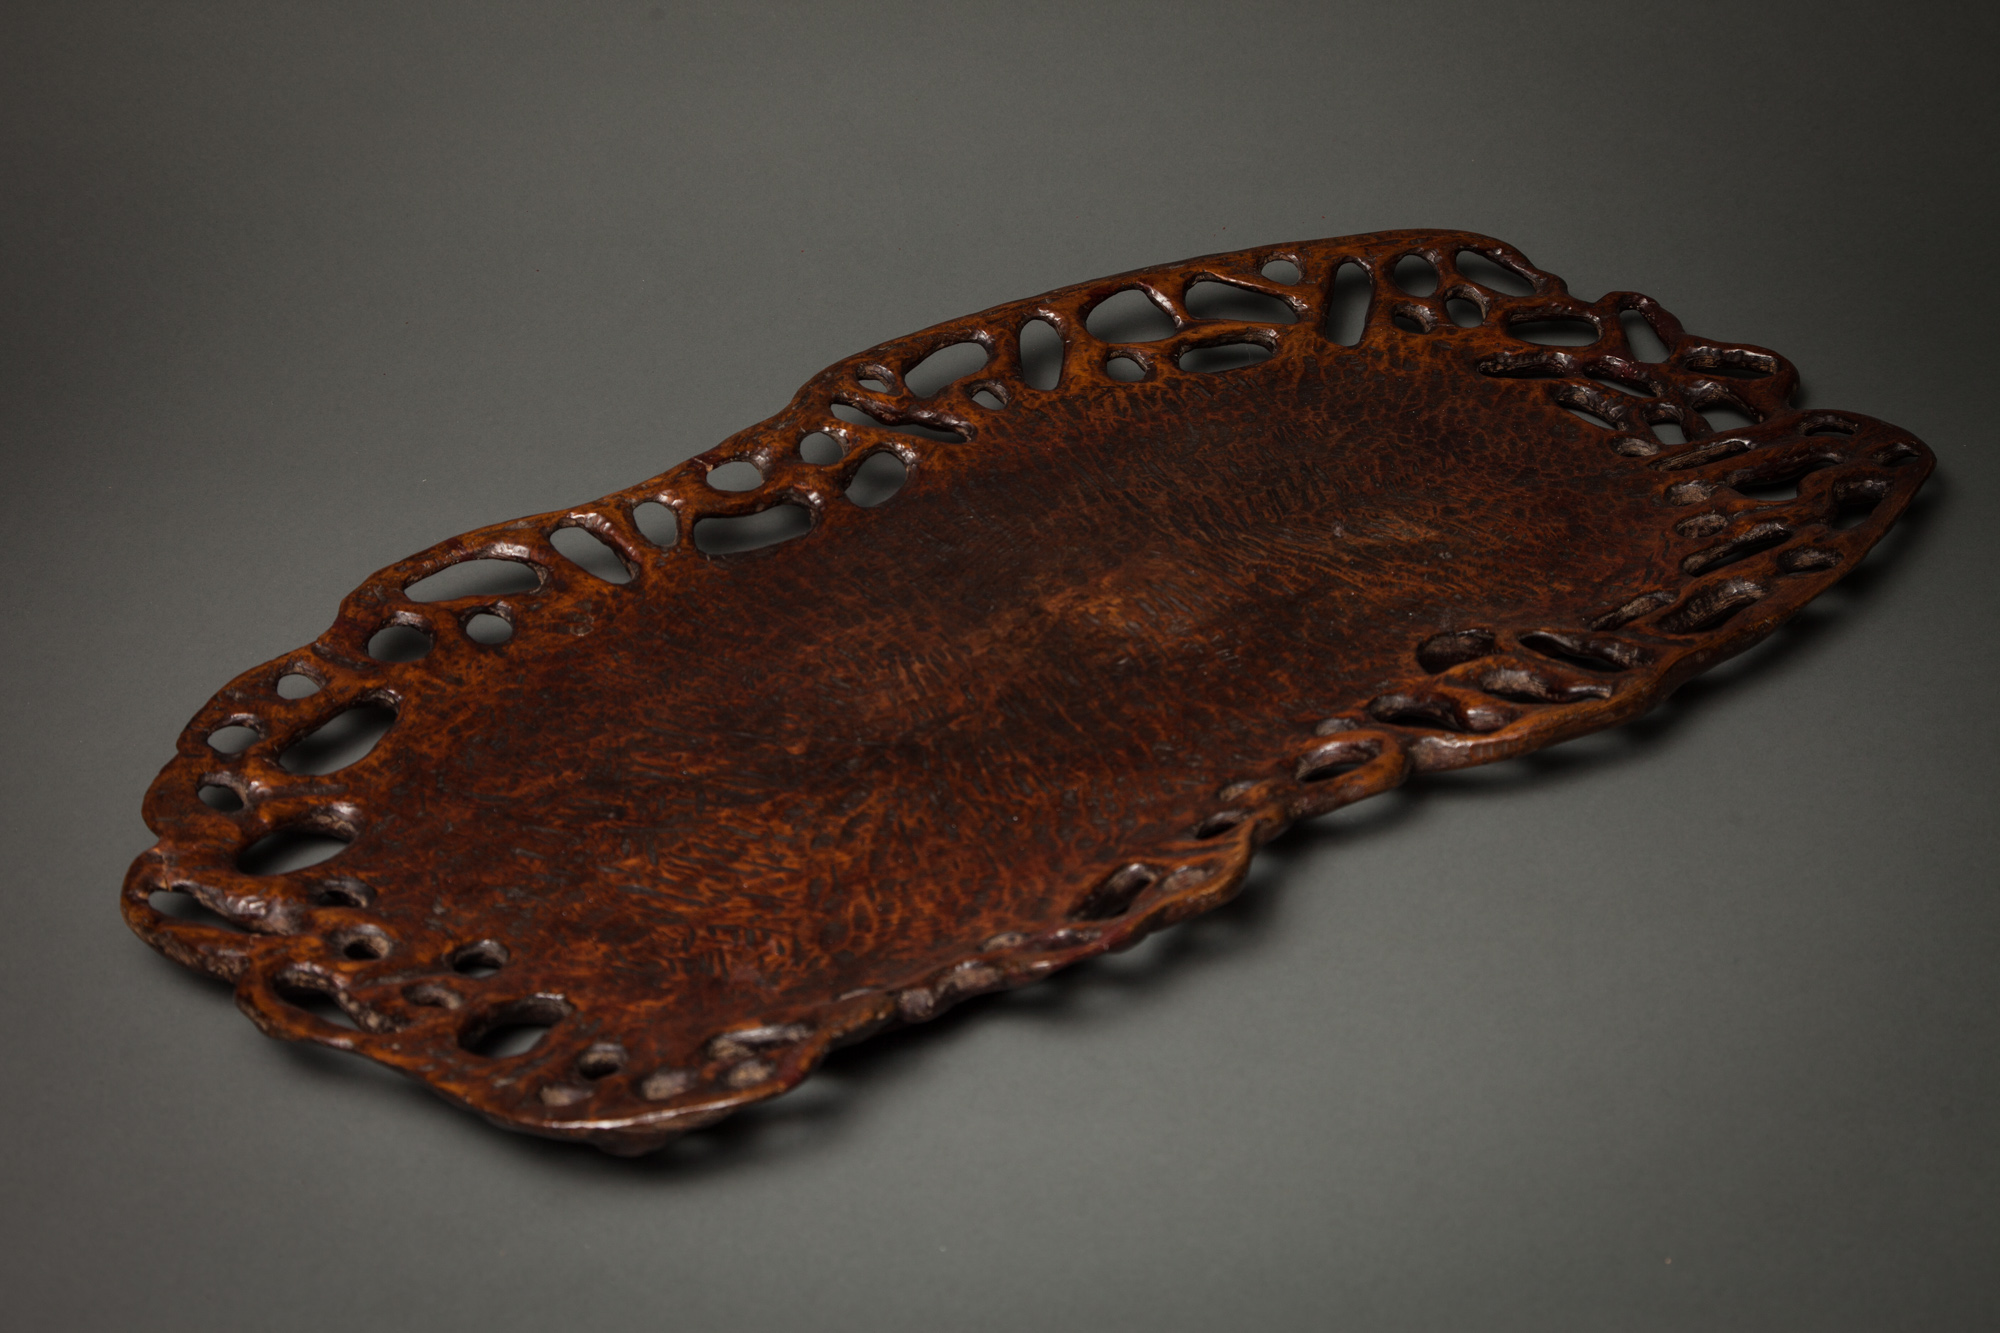 Japanese Carved Wooden Tray with Open Wood Border